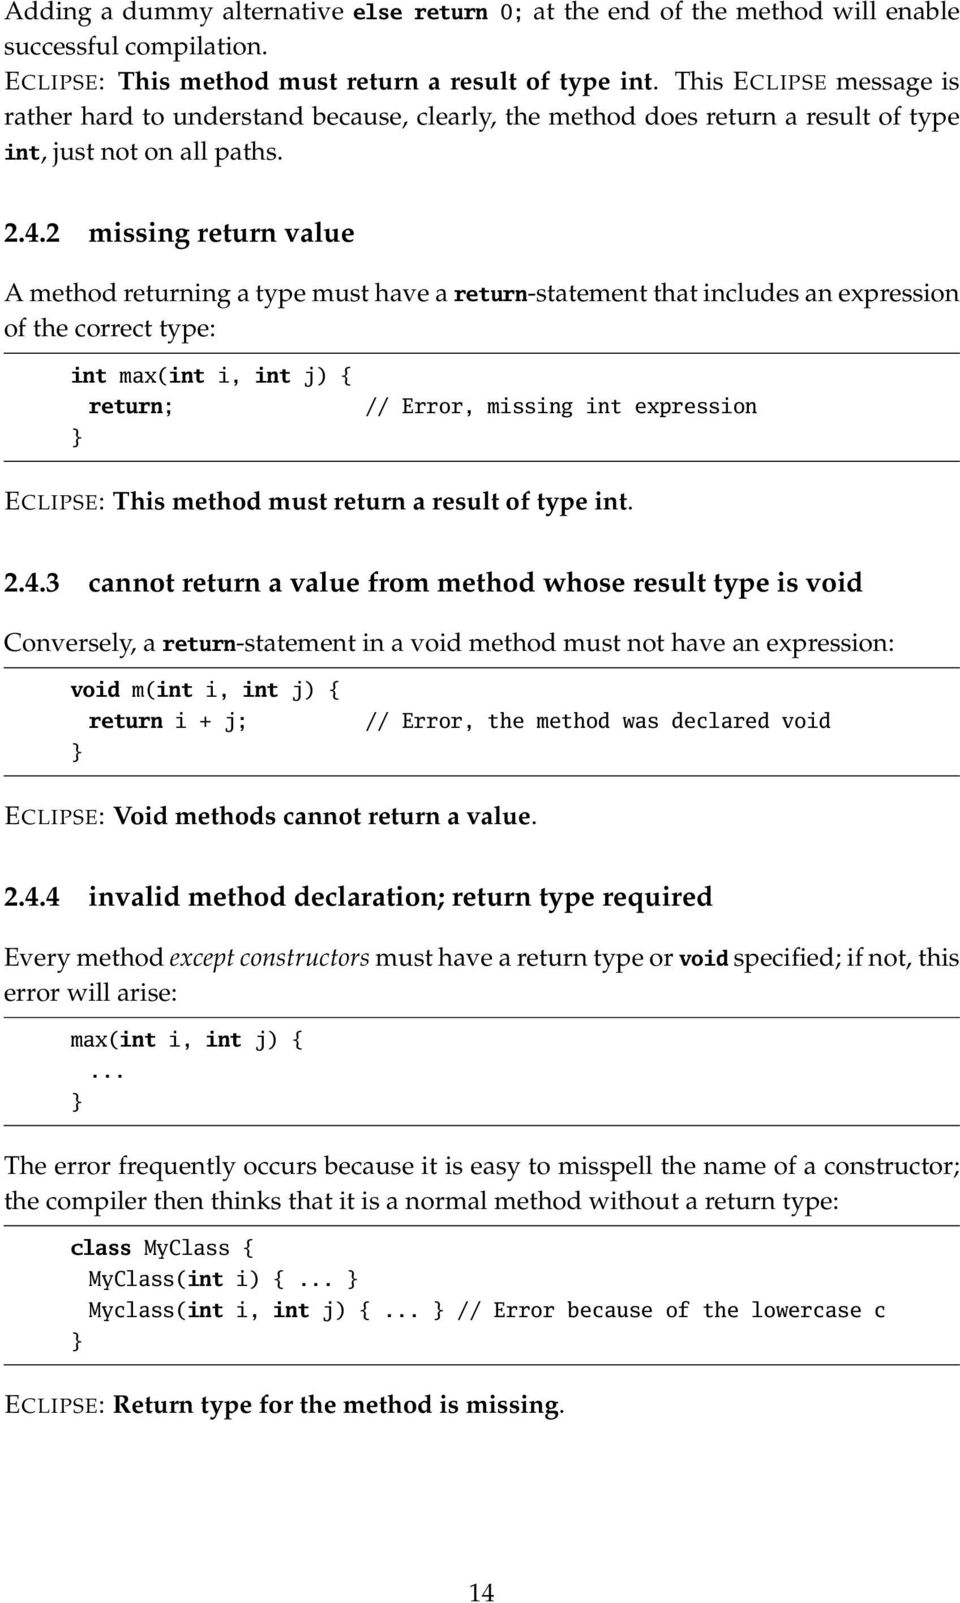 2 missing return value A method returning a type must have a return-statement that includes an expression of the correct type: int max(int i, int j) { return; // Error, missing int expression